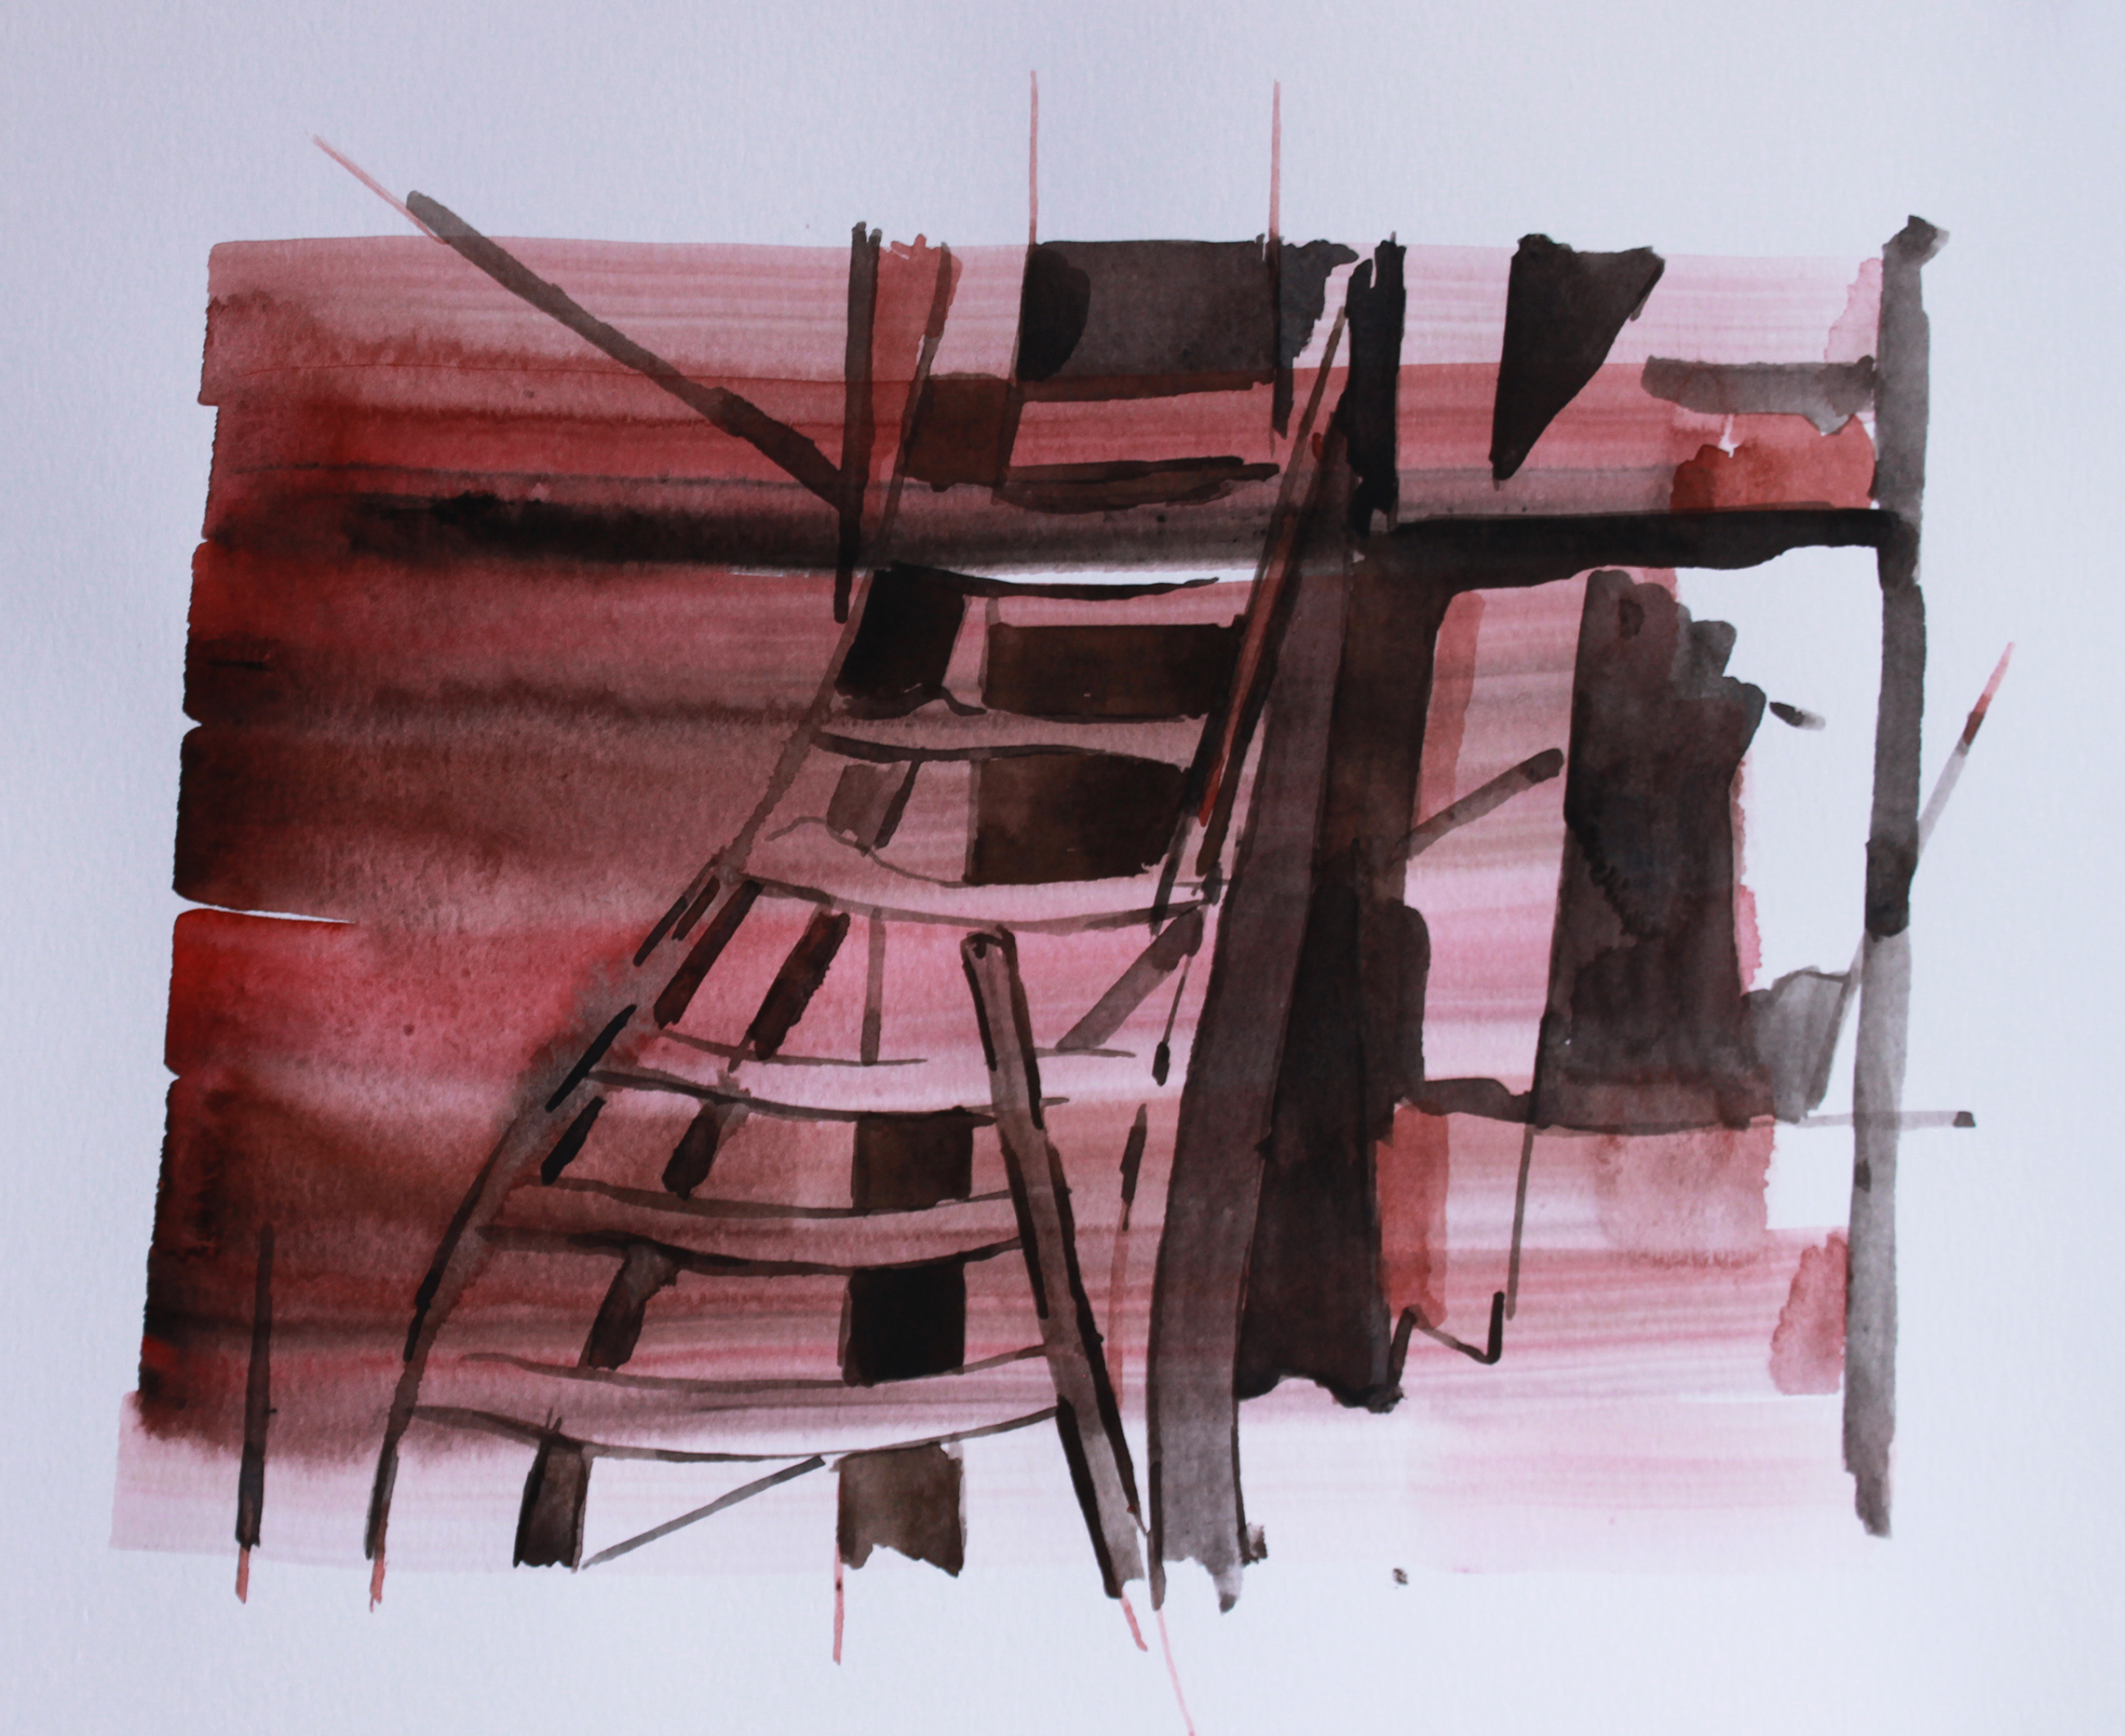 WHITE PHOSPHORUS, Watercolour on paper, 30.5 x 40.5cm, 2014